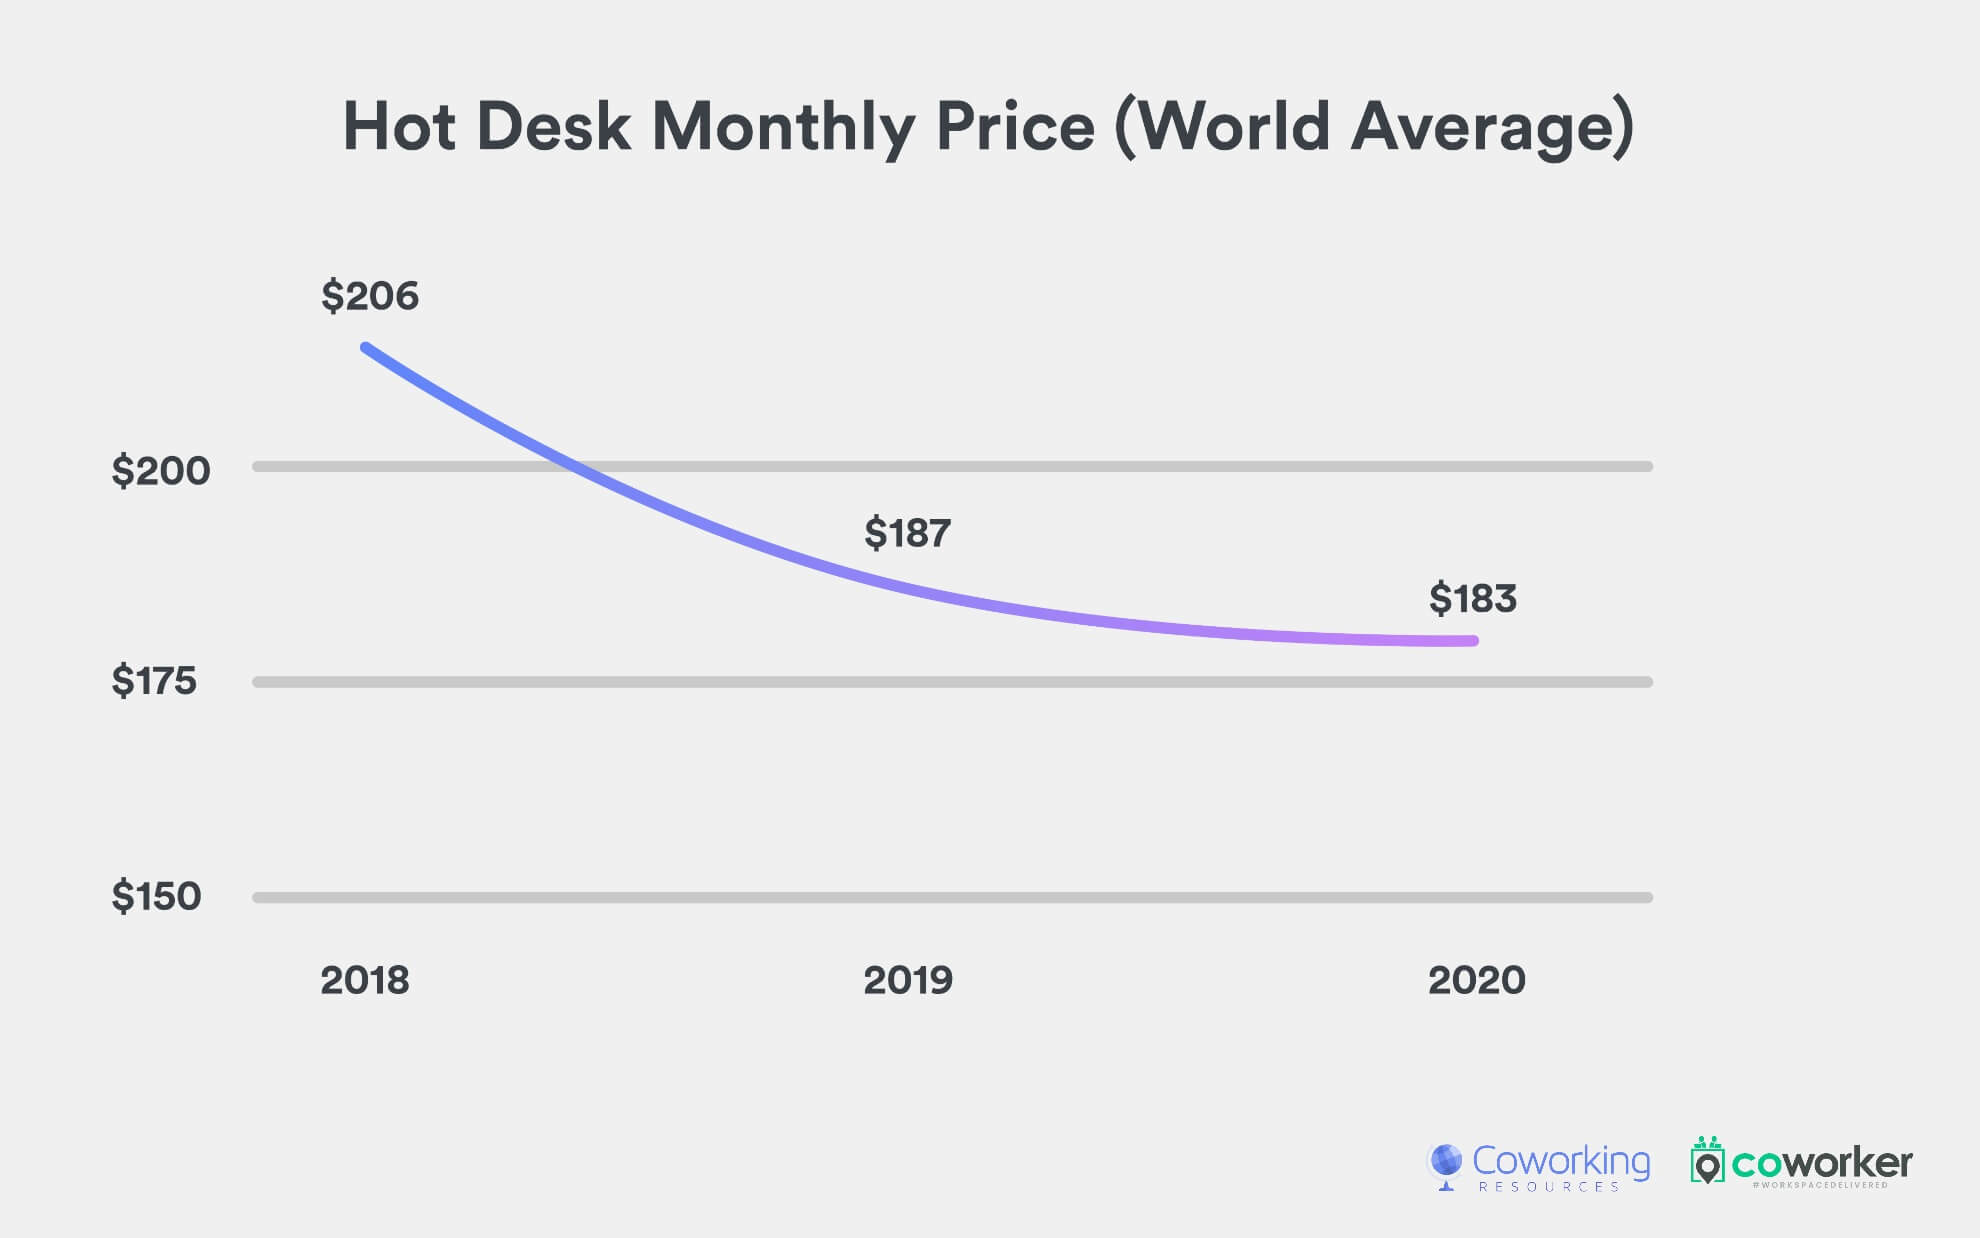 Hot Desk Price (World Average, 2018-2020)